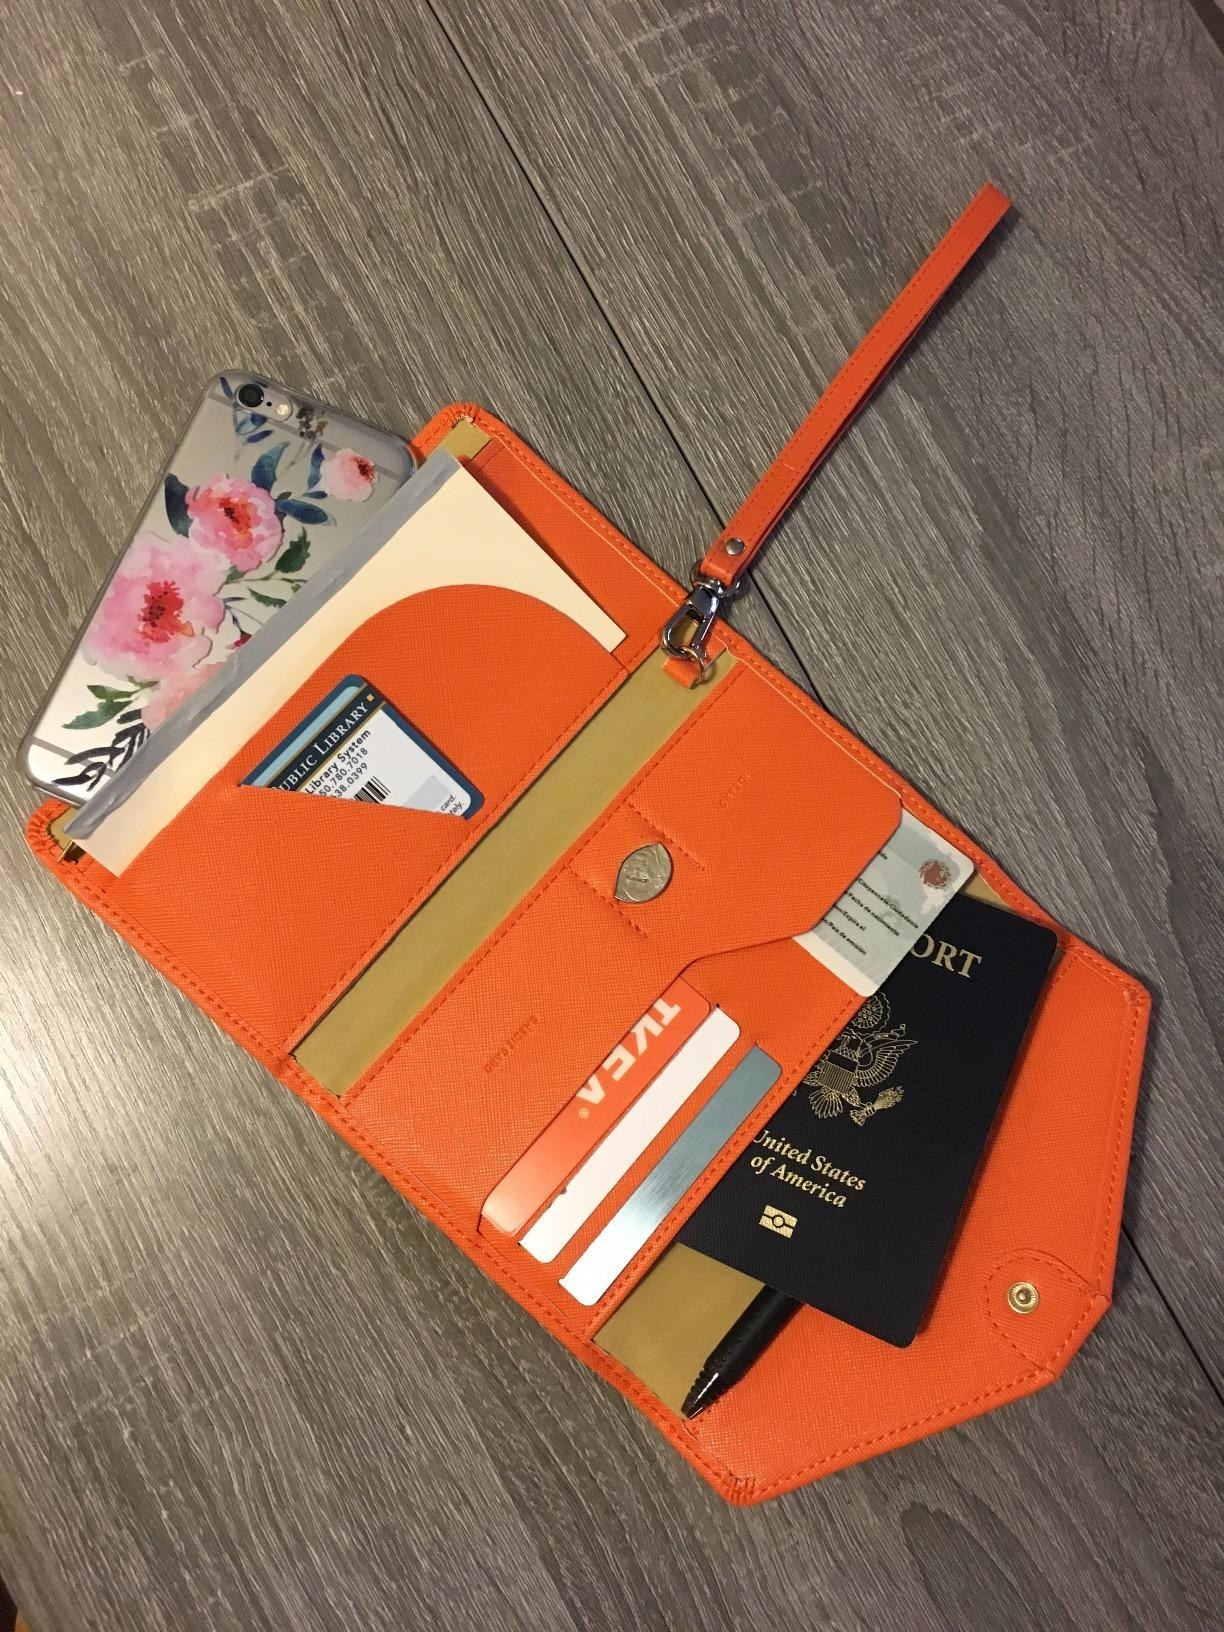 Reviewer pic of the rectangle-shaped orange wallet open, showing all the different pockets filled with cards, a passport, and other travel documents